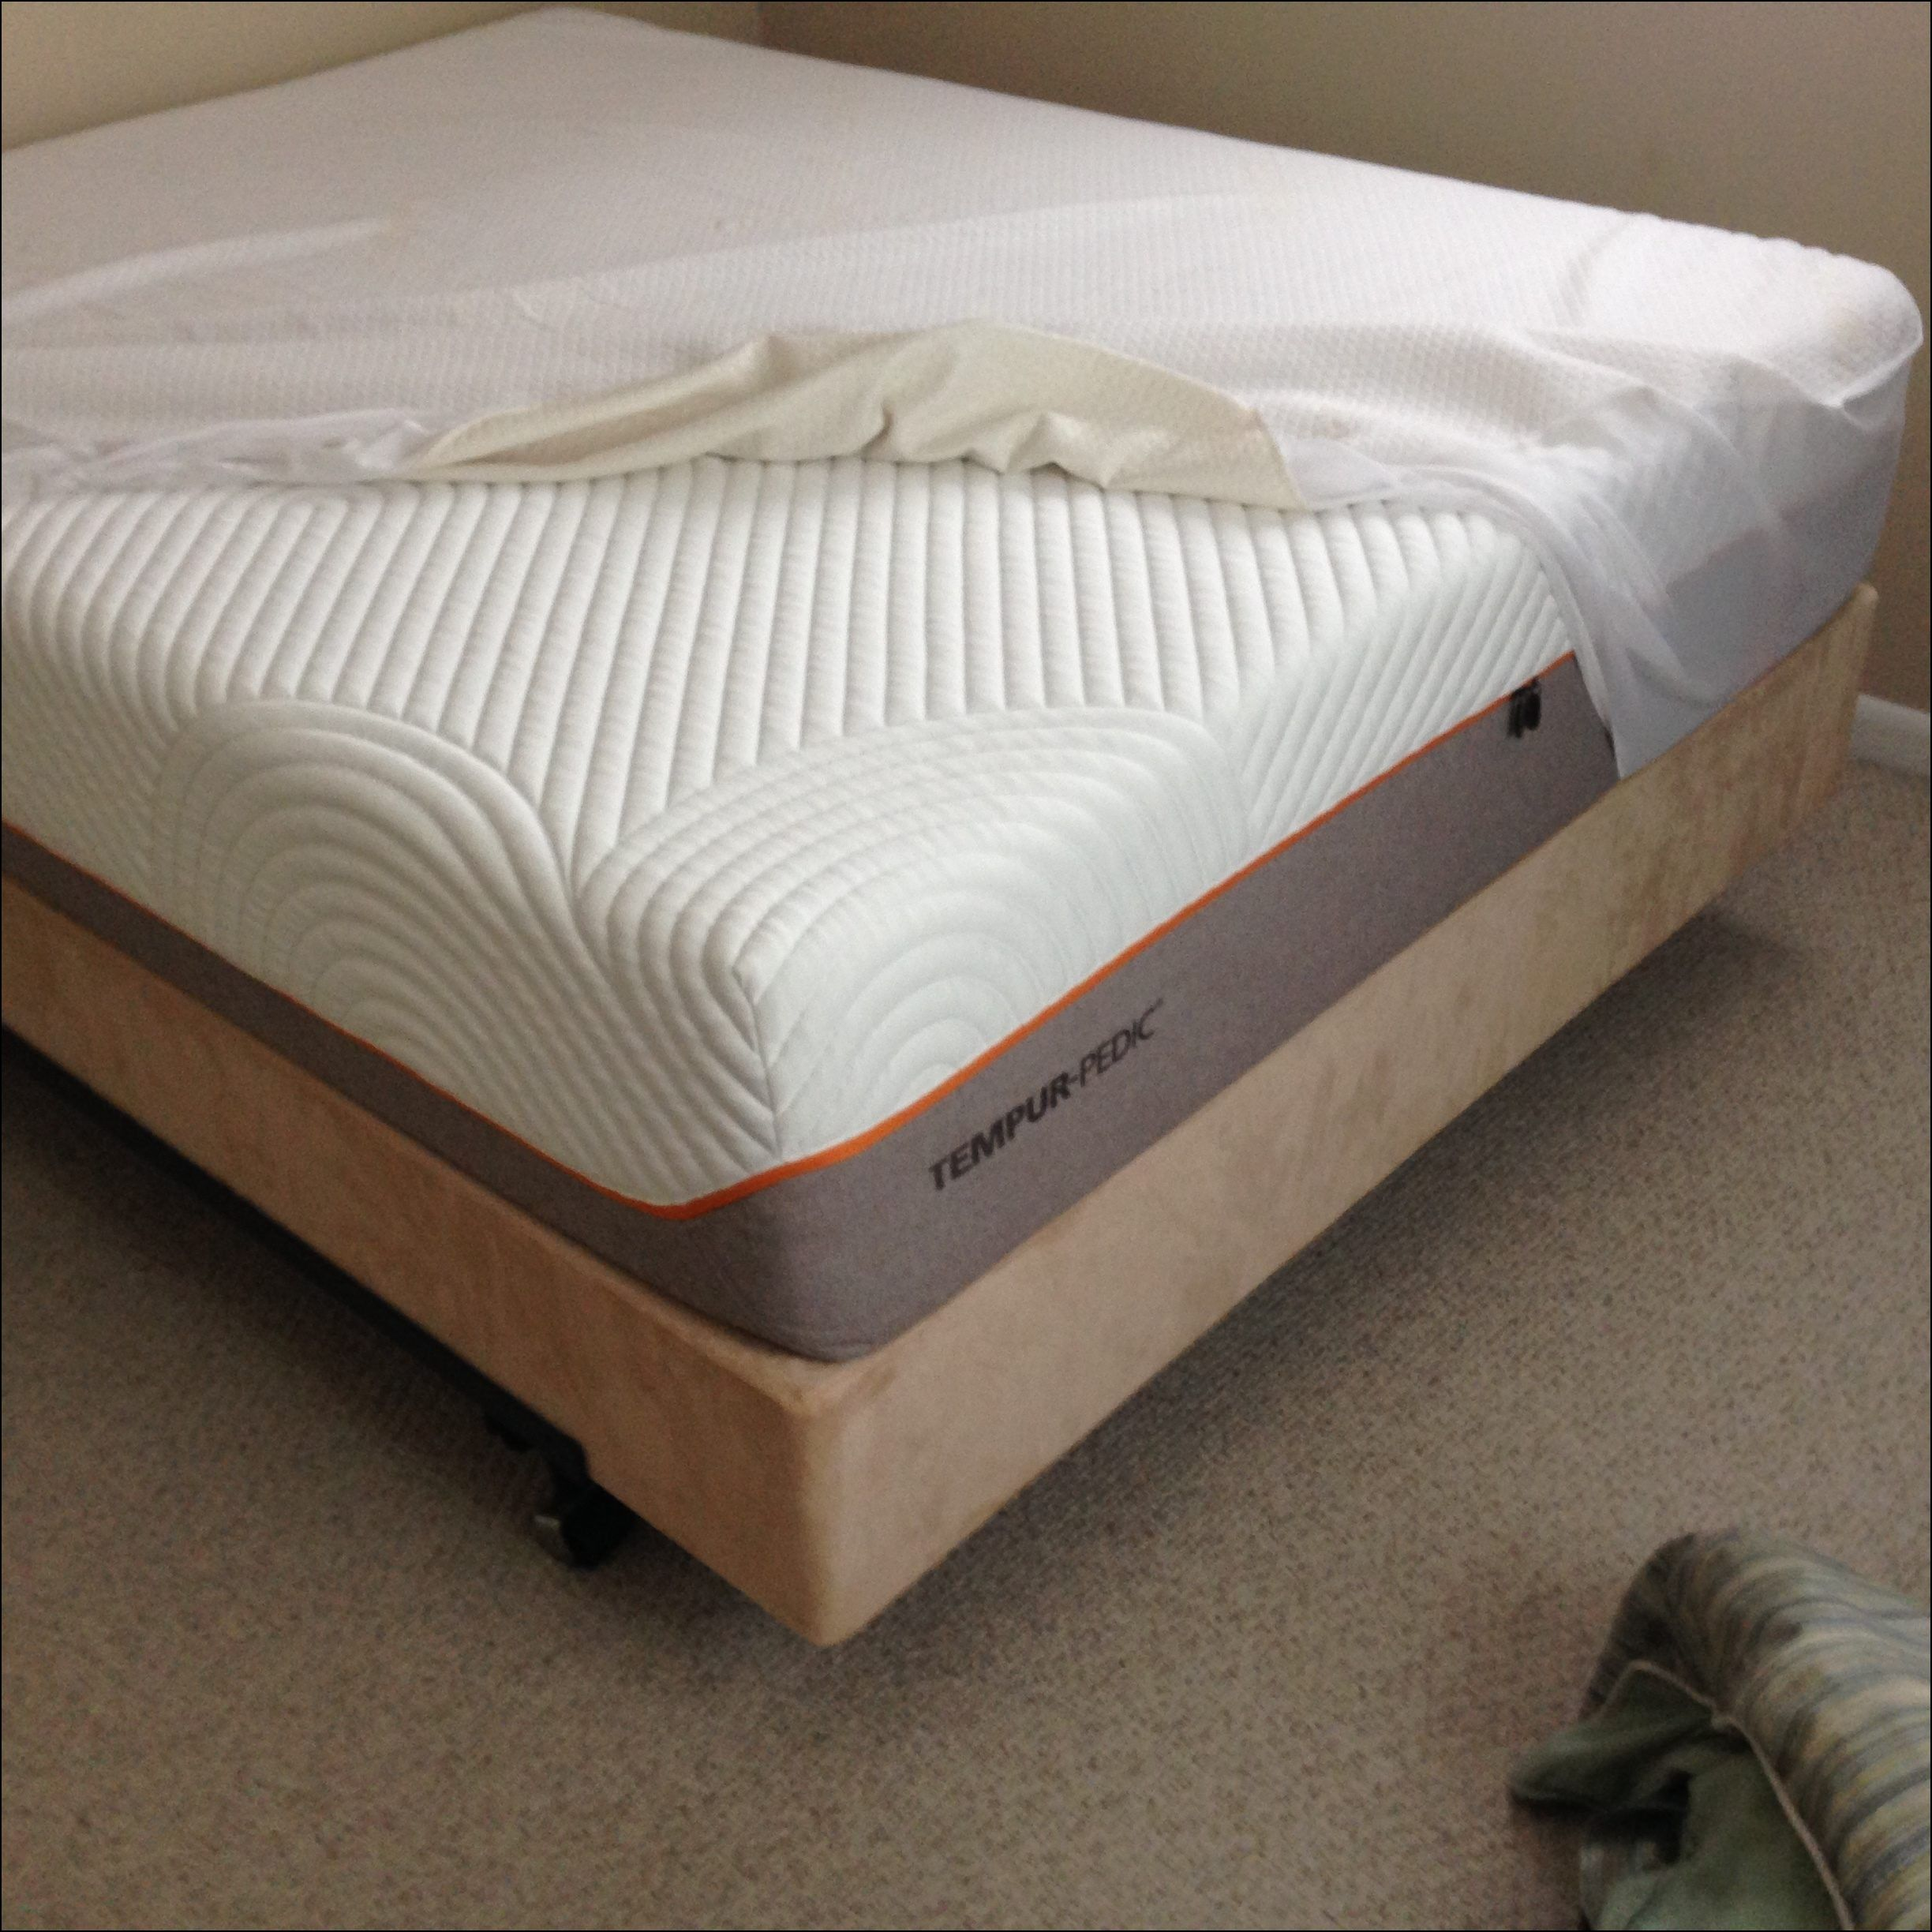 find out why tempur pedic is the most highly recommended bed in